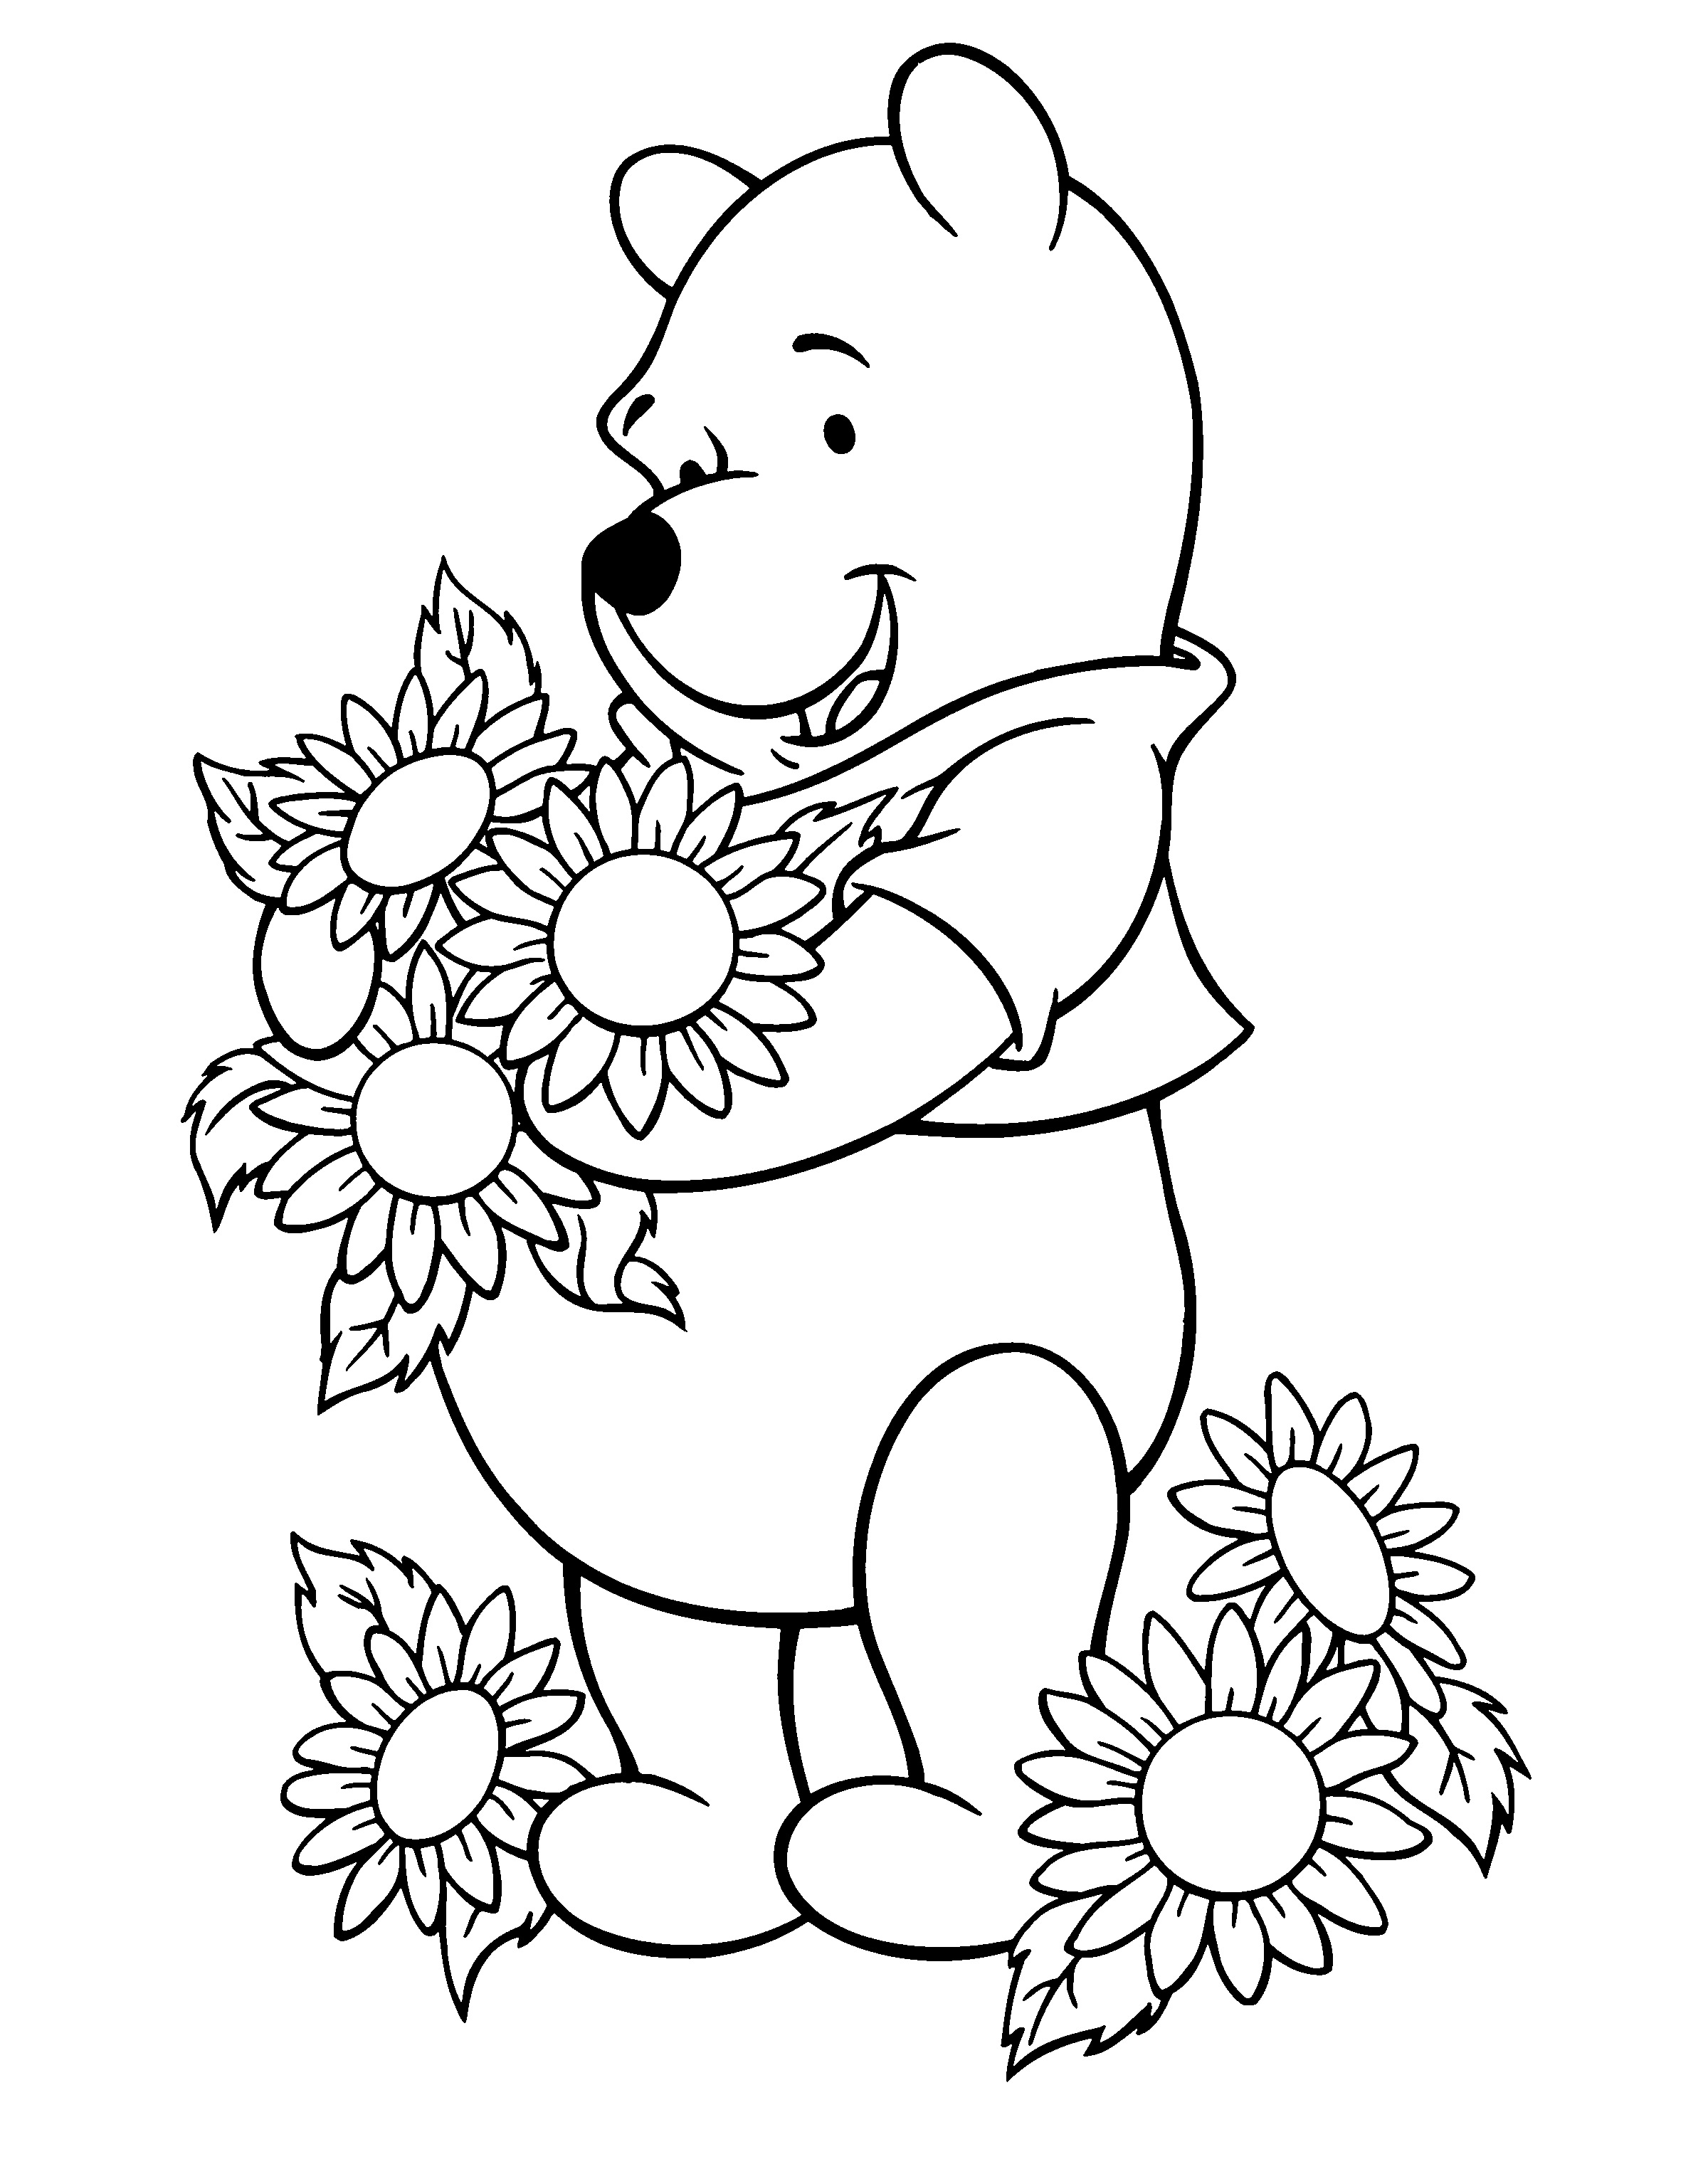 Pooh And Sunflowers Coloring Page